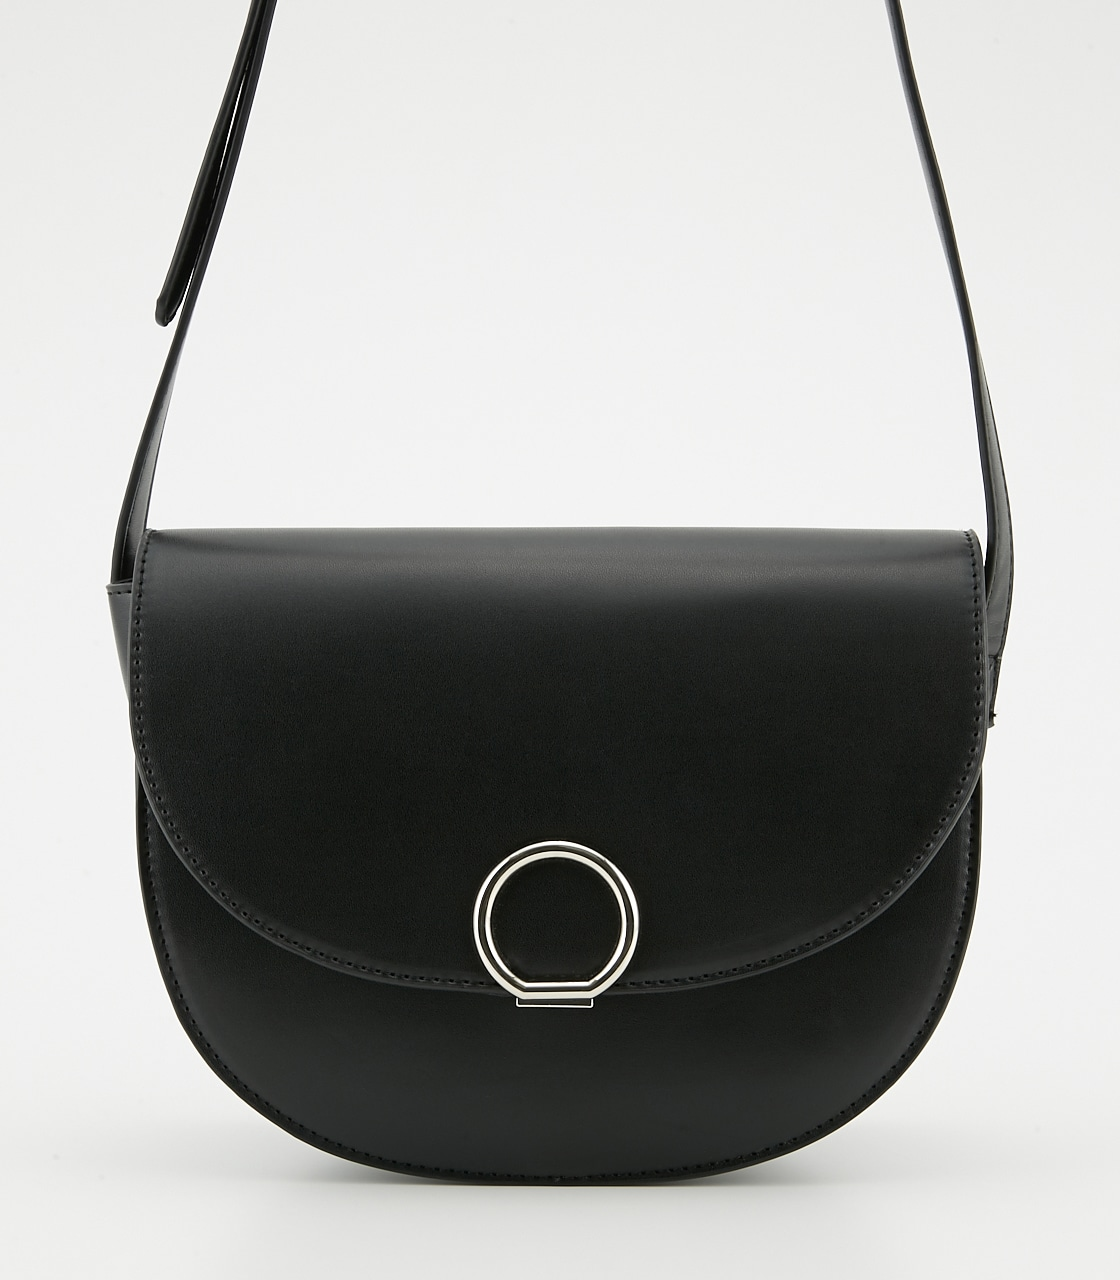 【AZUL BY MOUSSY】サークルメタルショルダーバッグ 詳細画像 BLK 3